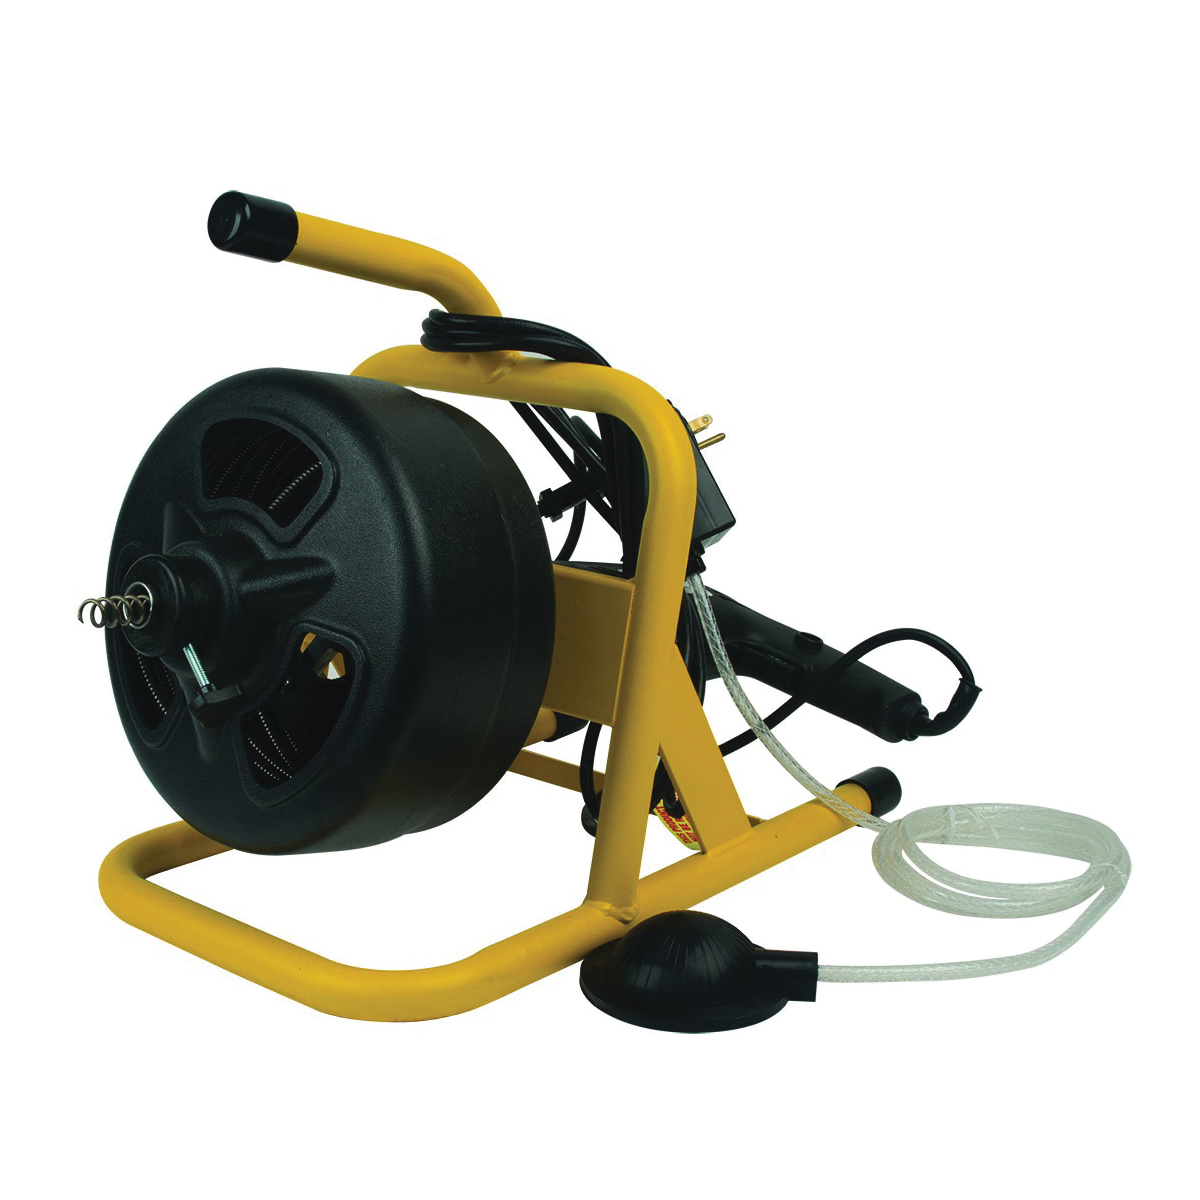 Picture of COBRA TOOLS 20 Series 90020 Drum Machine, 1/4 in Dia Cable, 50 ft L Cable, Pneumatic Foot Switch Control